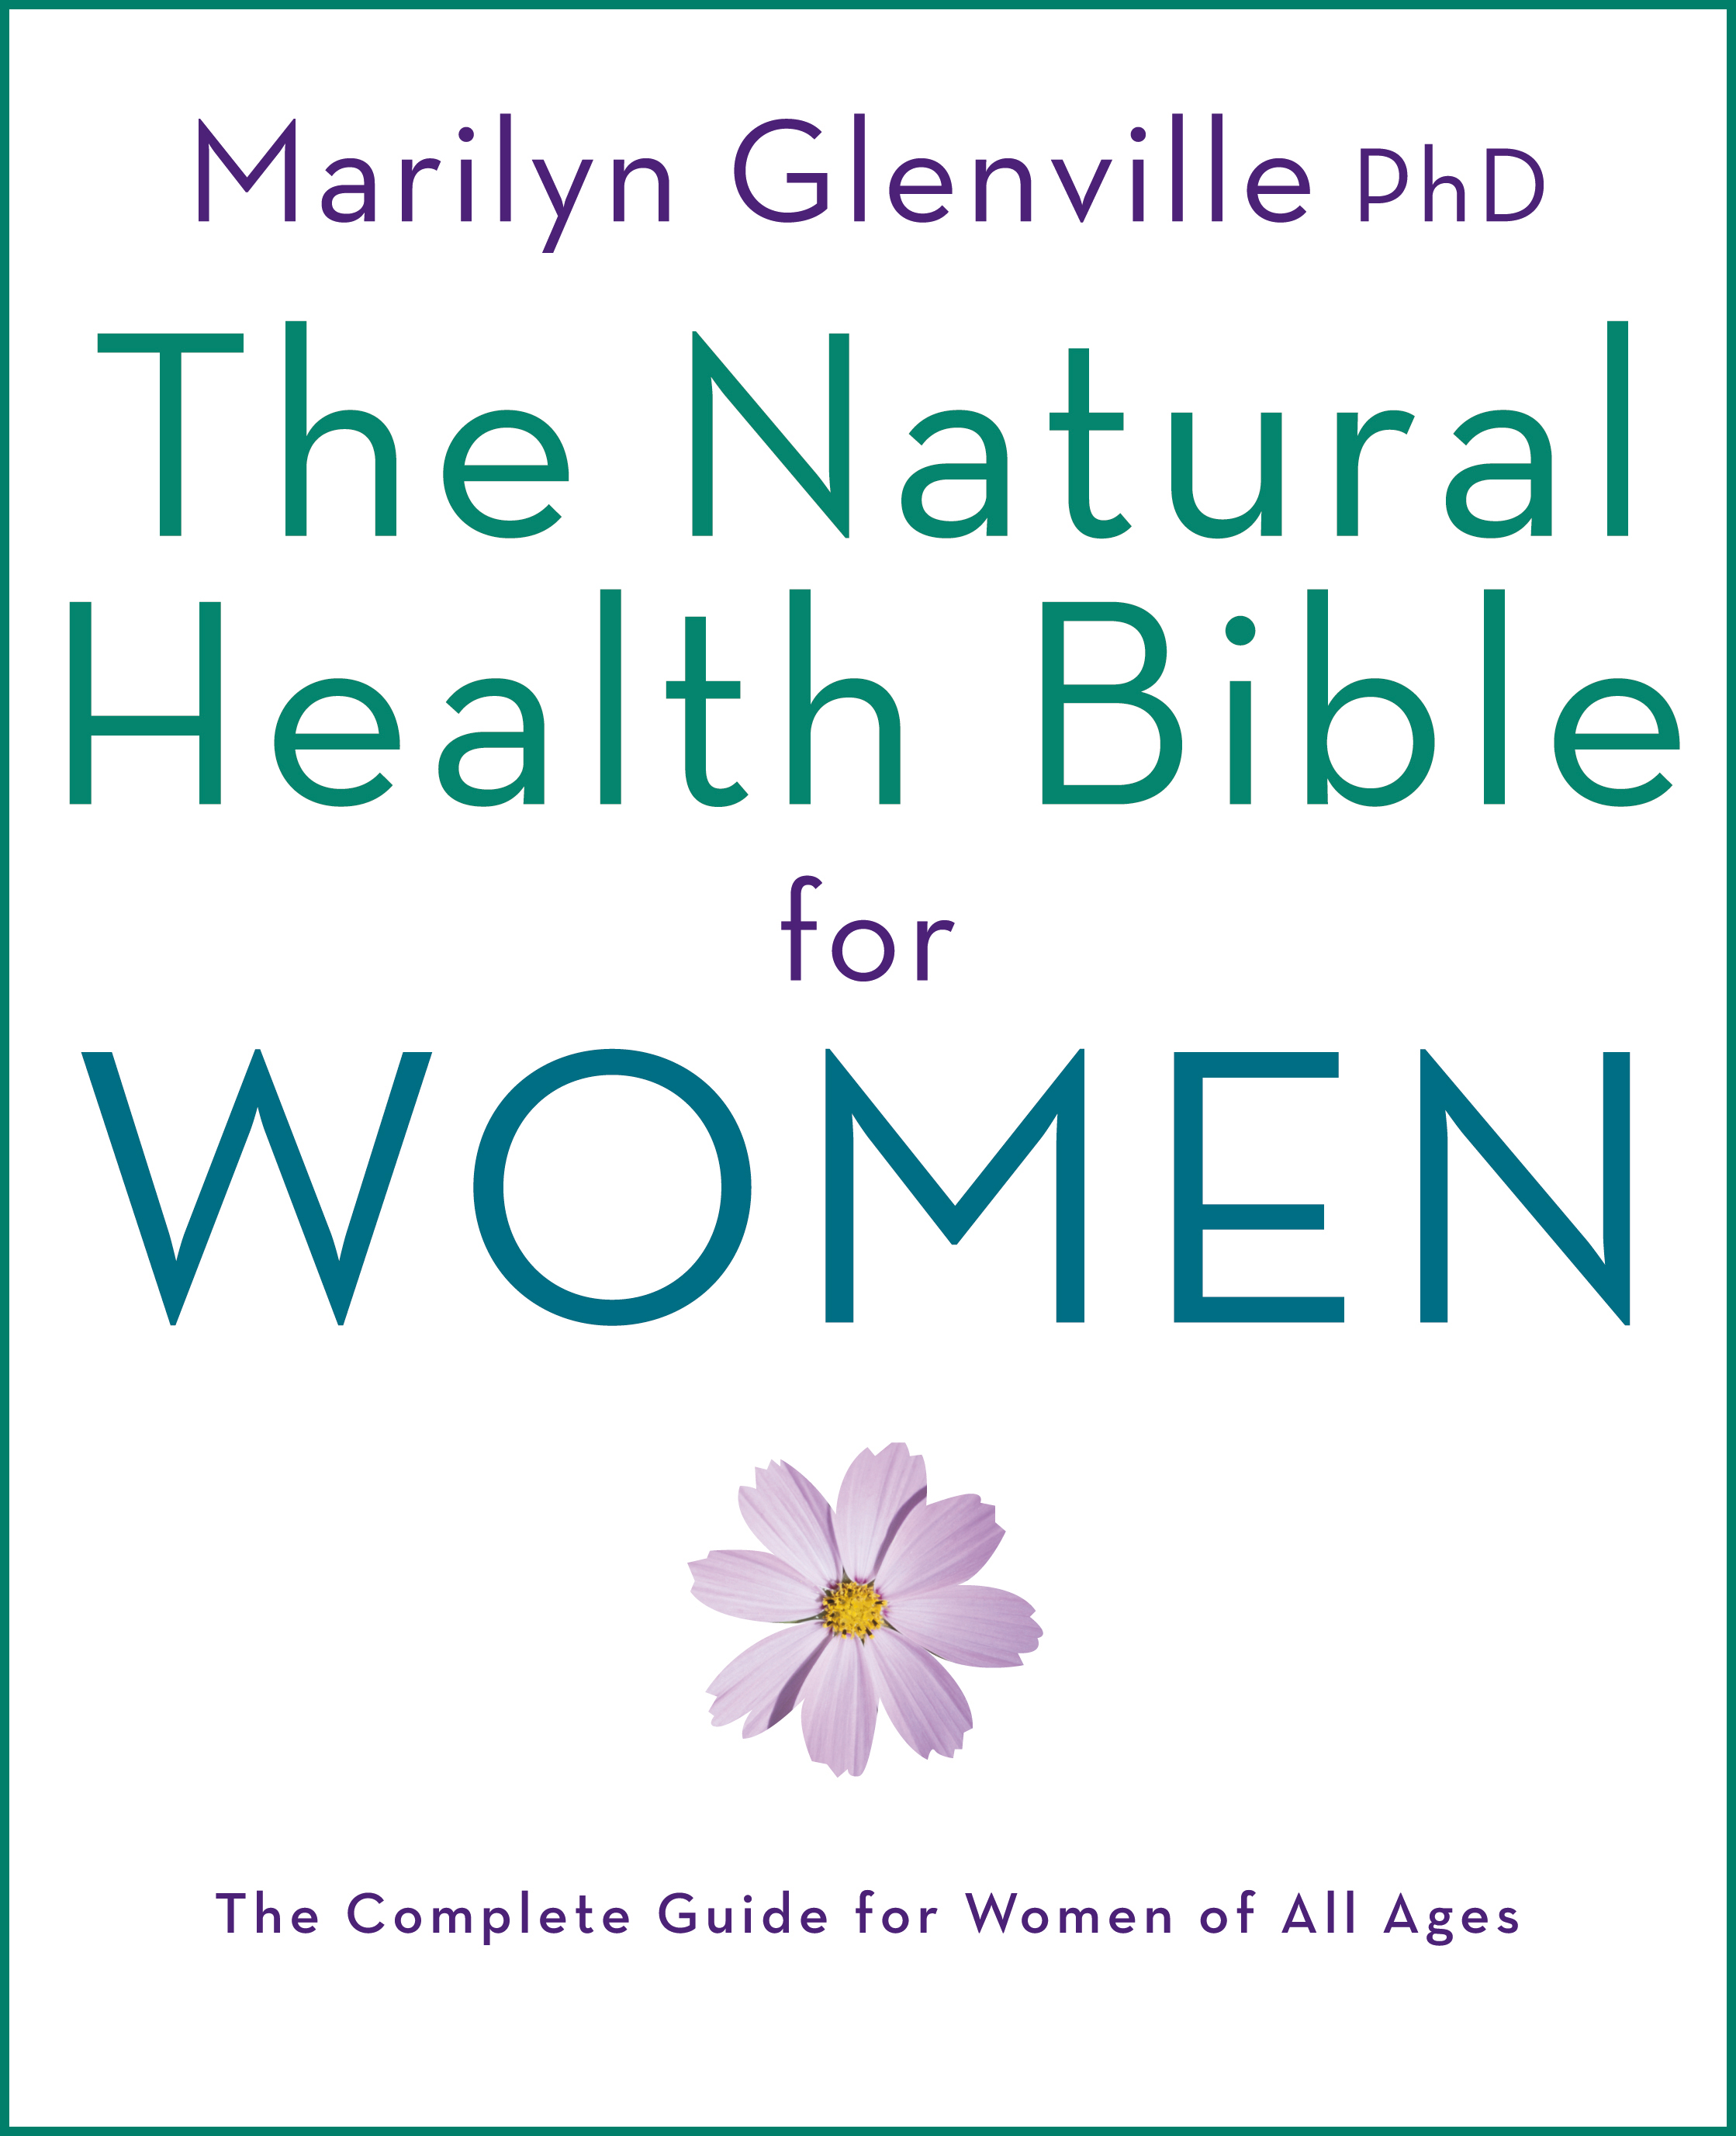 The Natural Health Bible for Women Book